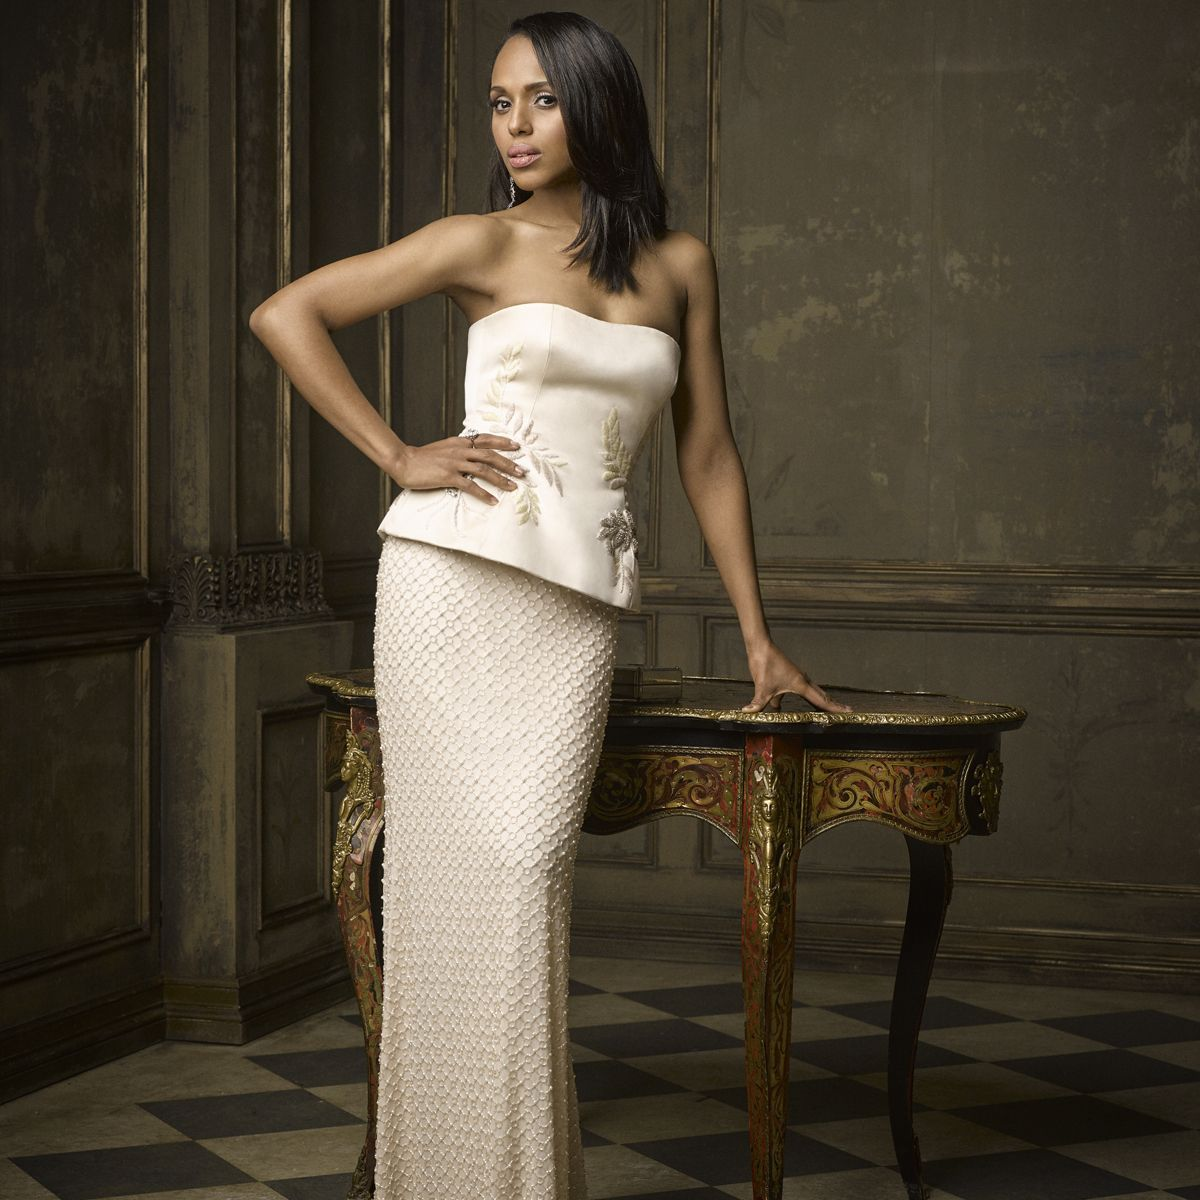 Kerry Washington - photograph by Mark Seliger